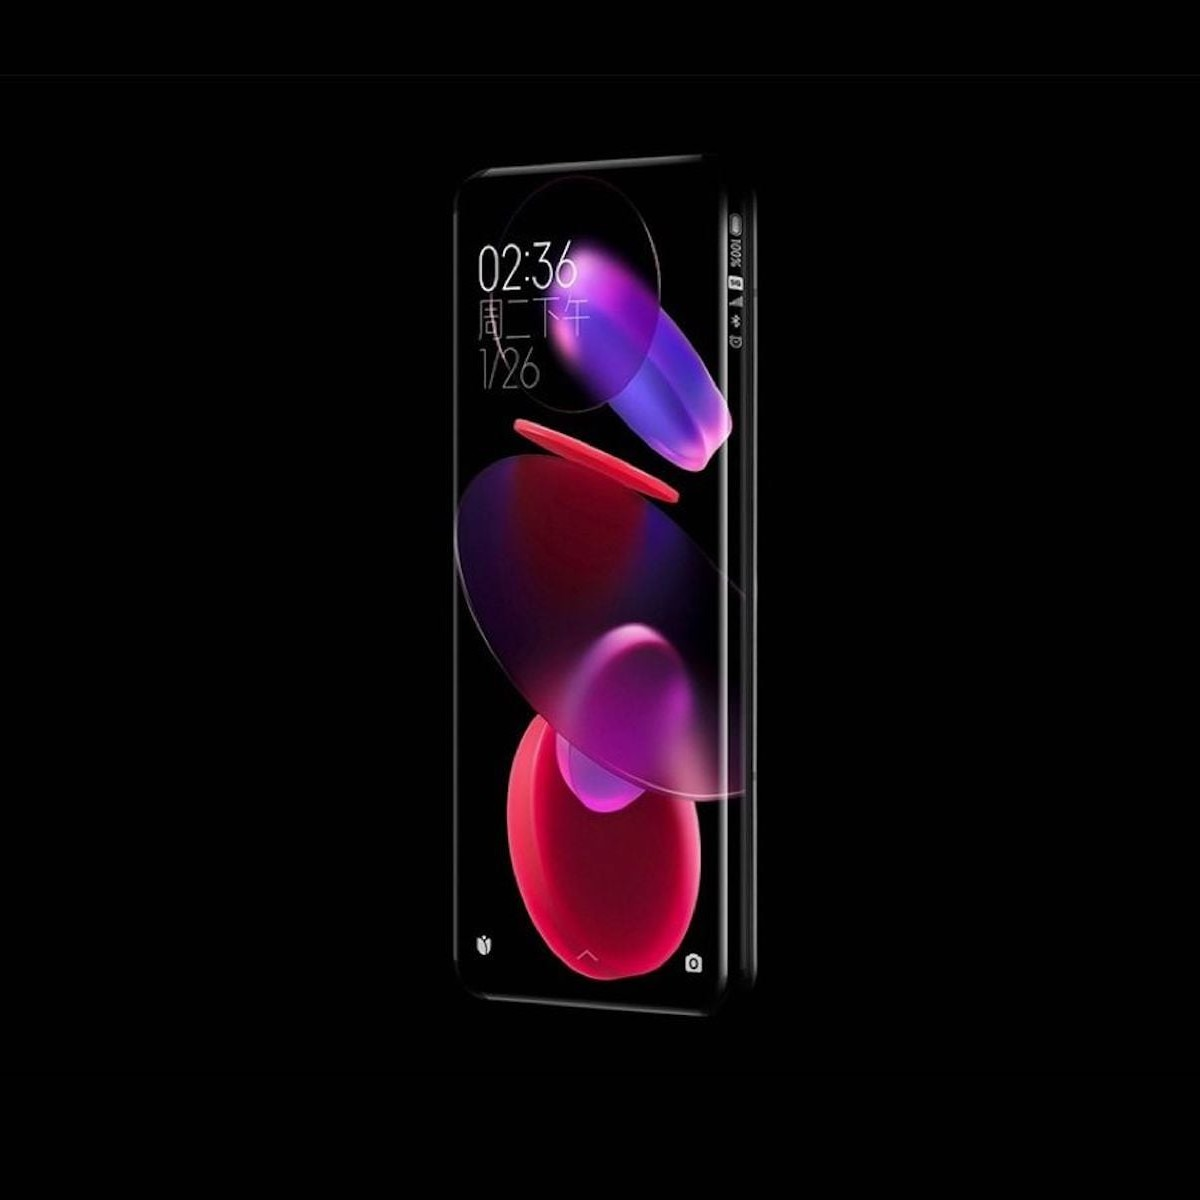 The new concept smartphone from Xiaomi has a quad-curved waterfall screen thumbnail